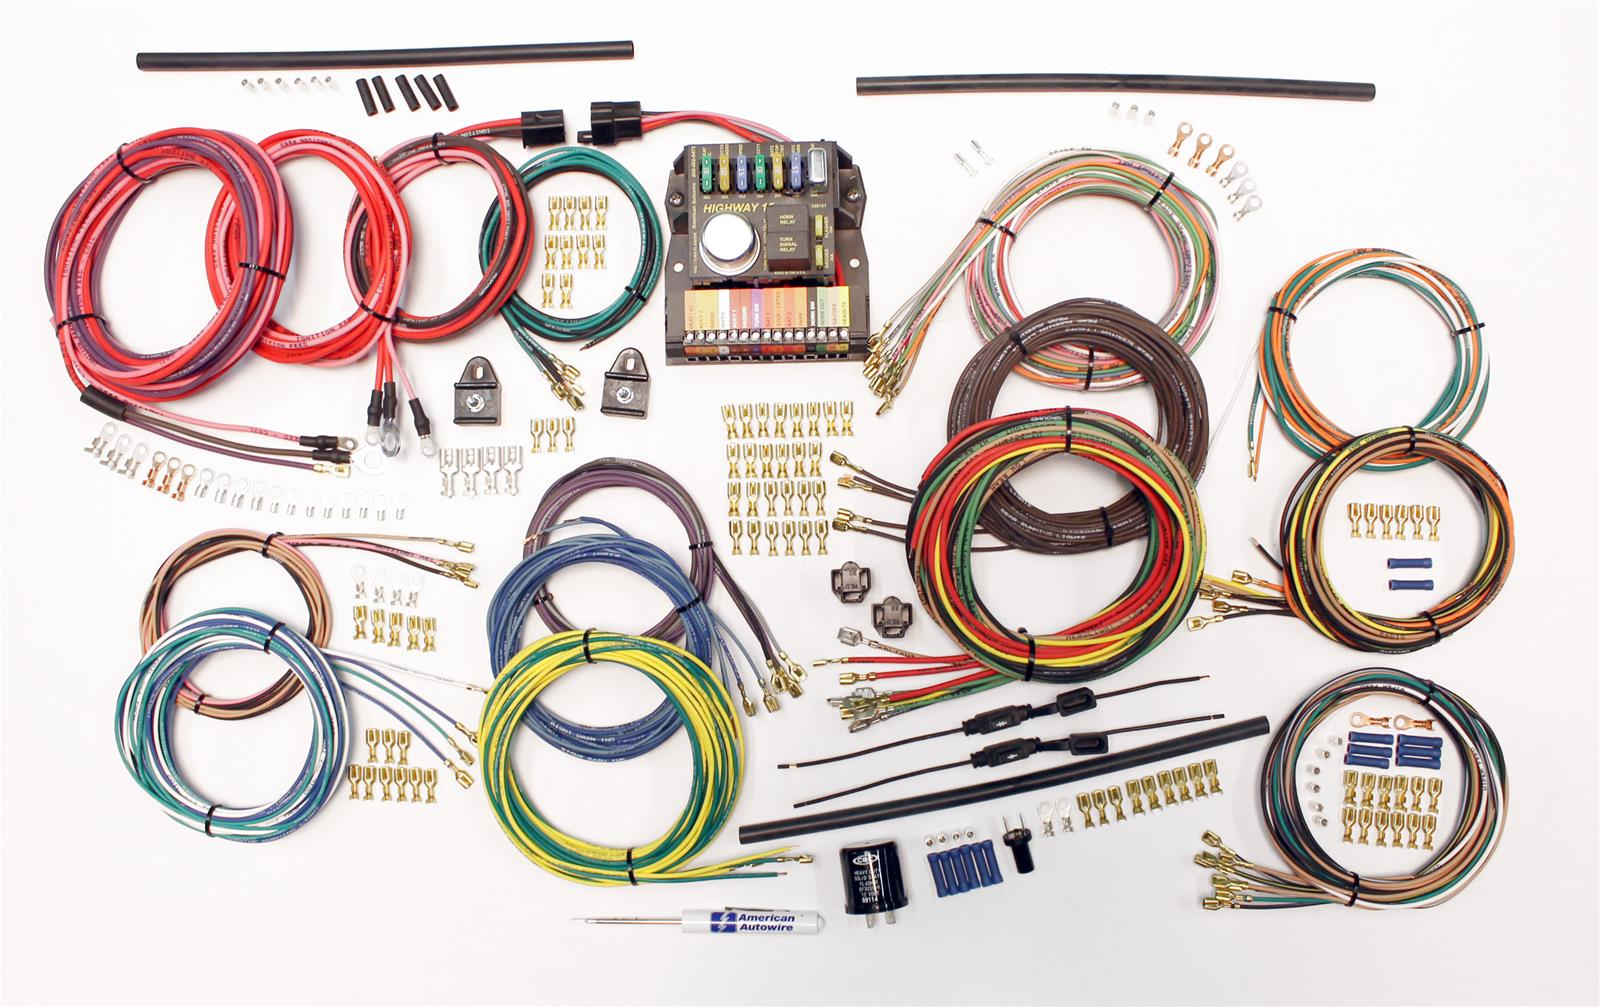 aww 510419_xl american autowire classic update series wiring harness kits 510419 aaw wiring harness at aneh.co